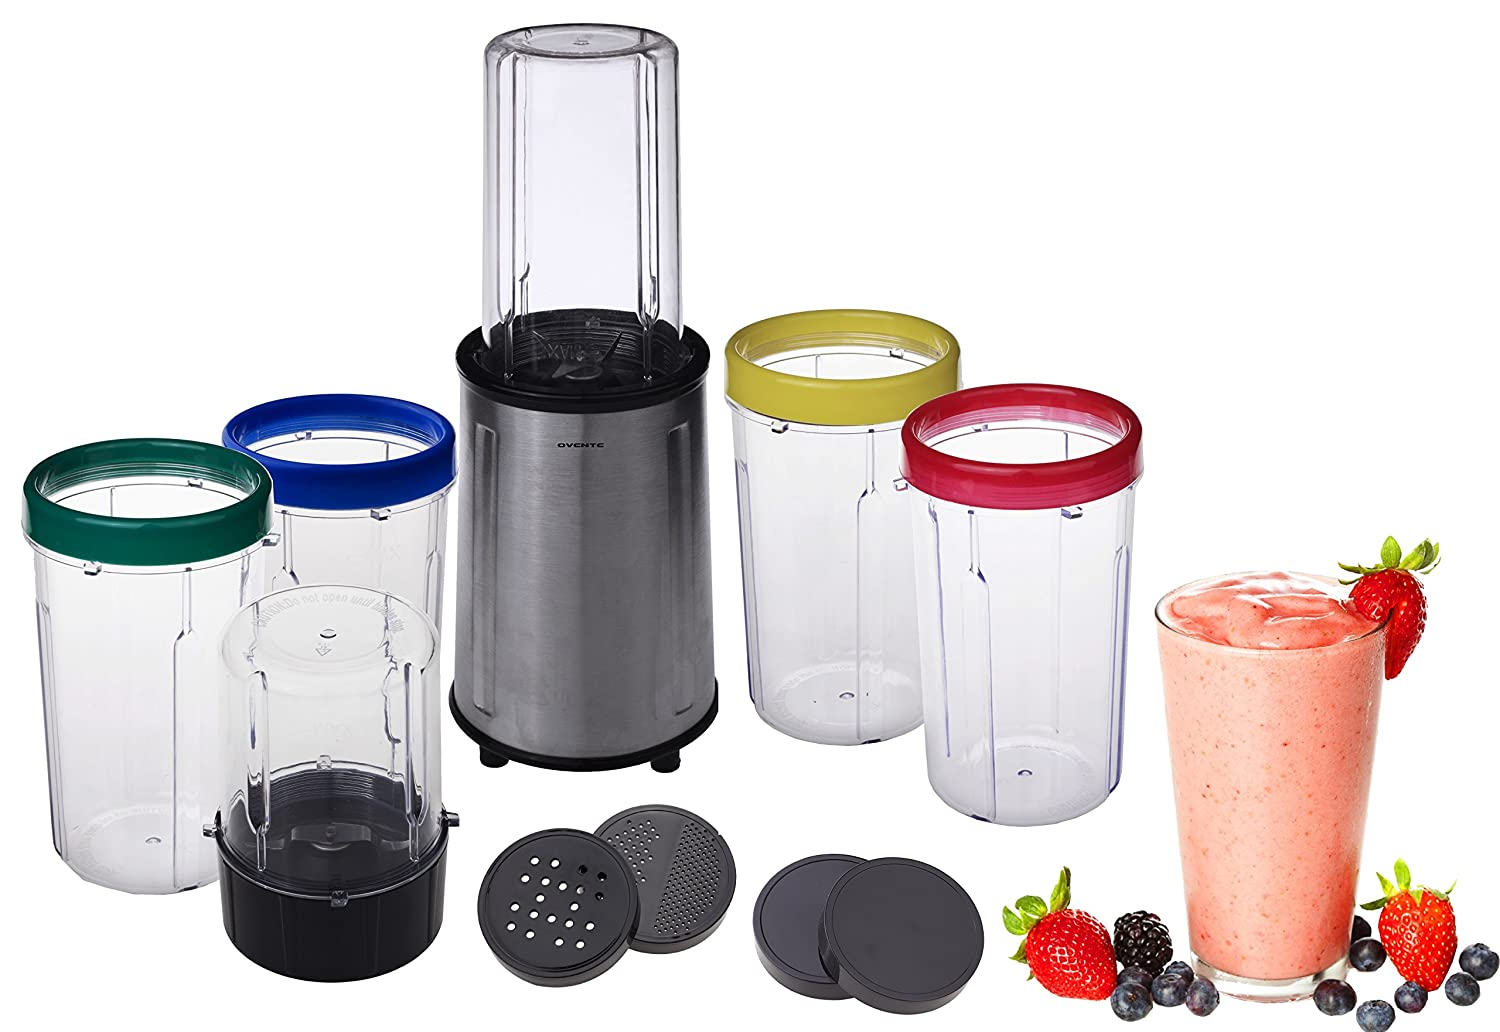 Ovente HS517 17 Piece All-Purpose Flash Blender Set, Stainless Steel